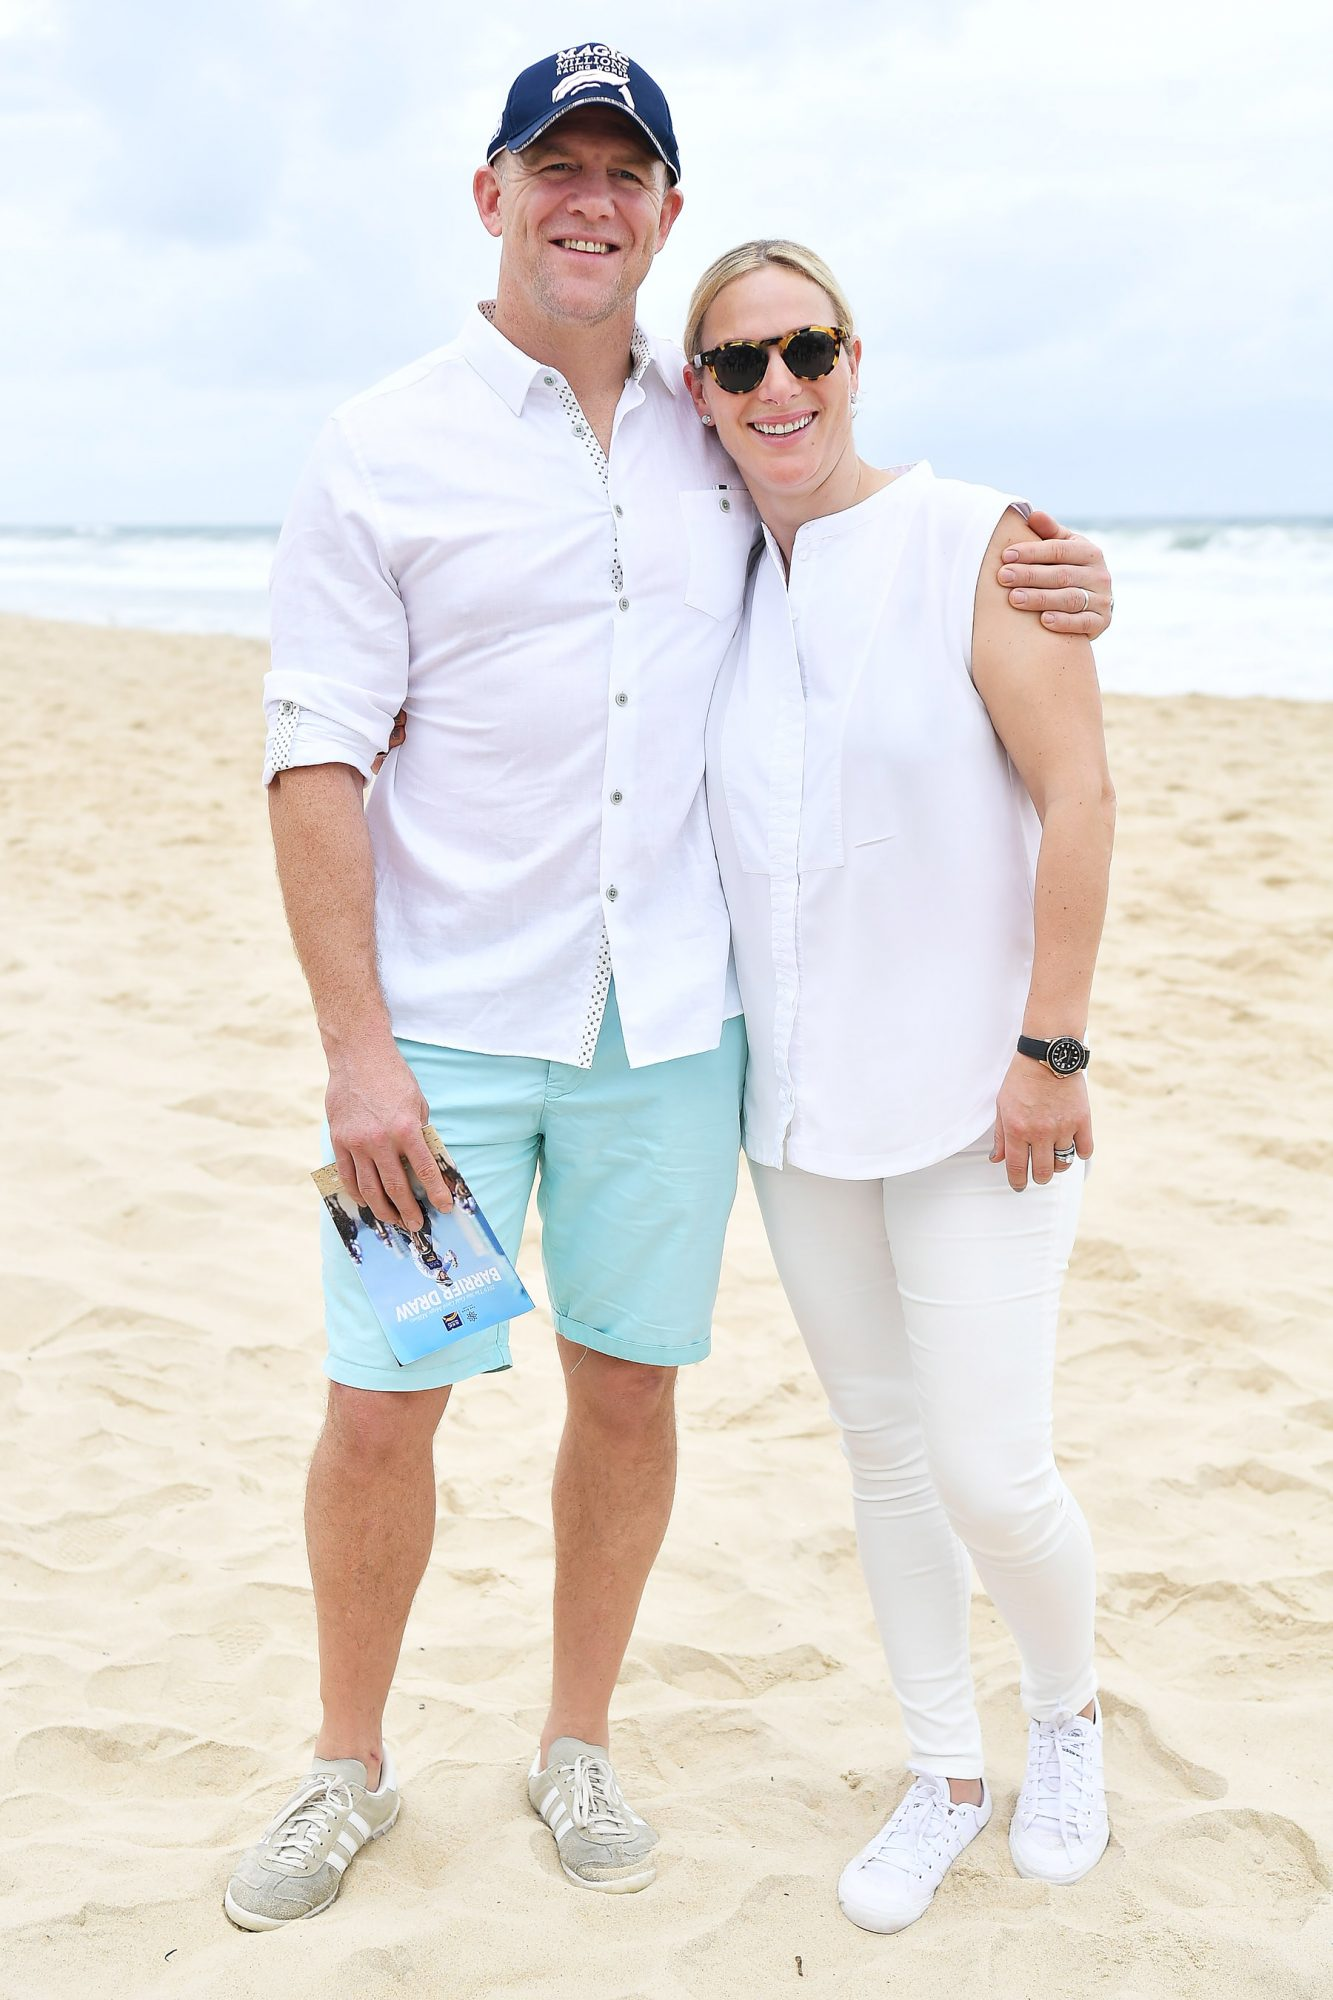 Zara Phillips & Mike Tindall At The Magic Millions Barrier Draw On Surfers Paradise Beach